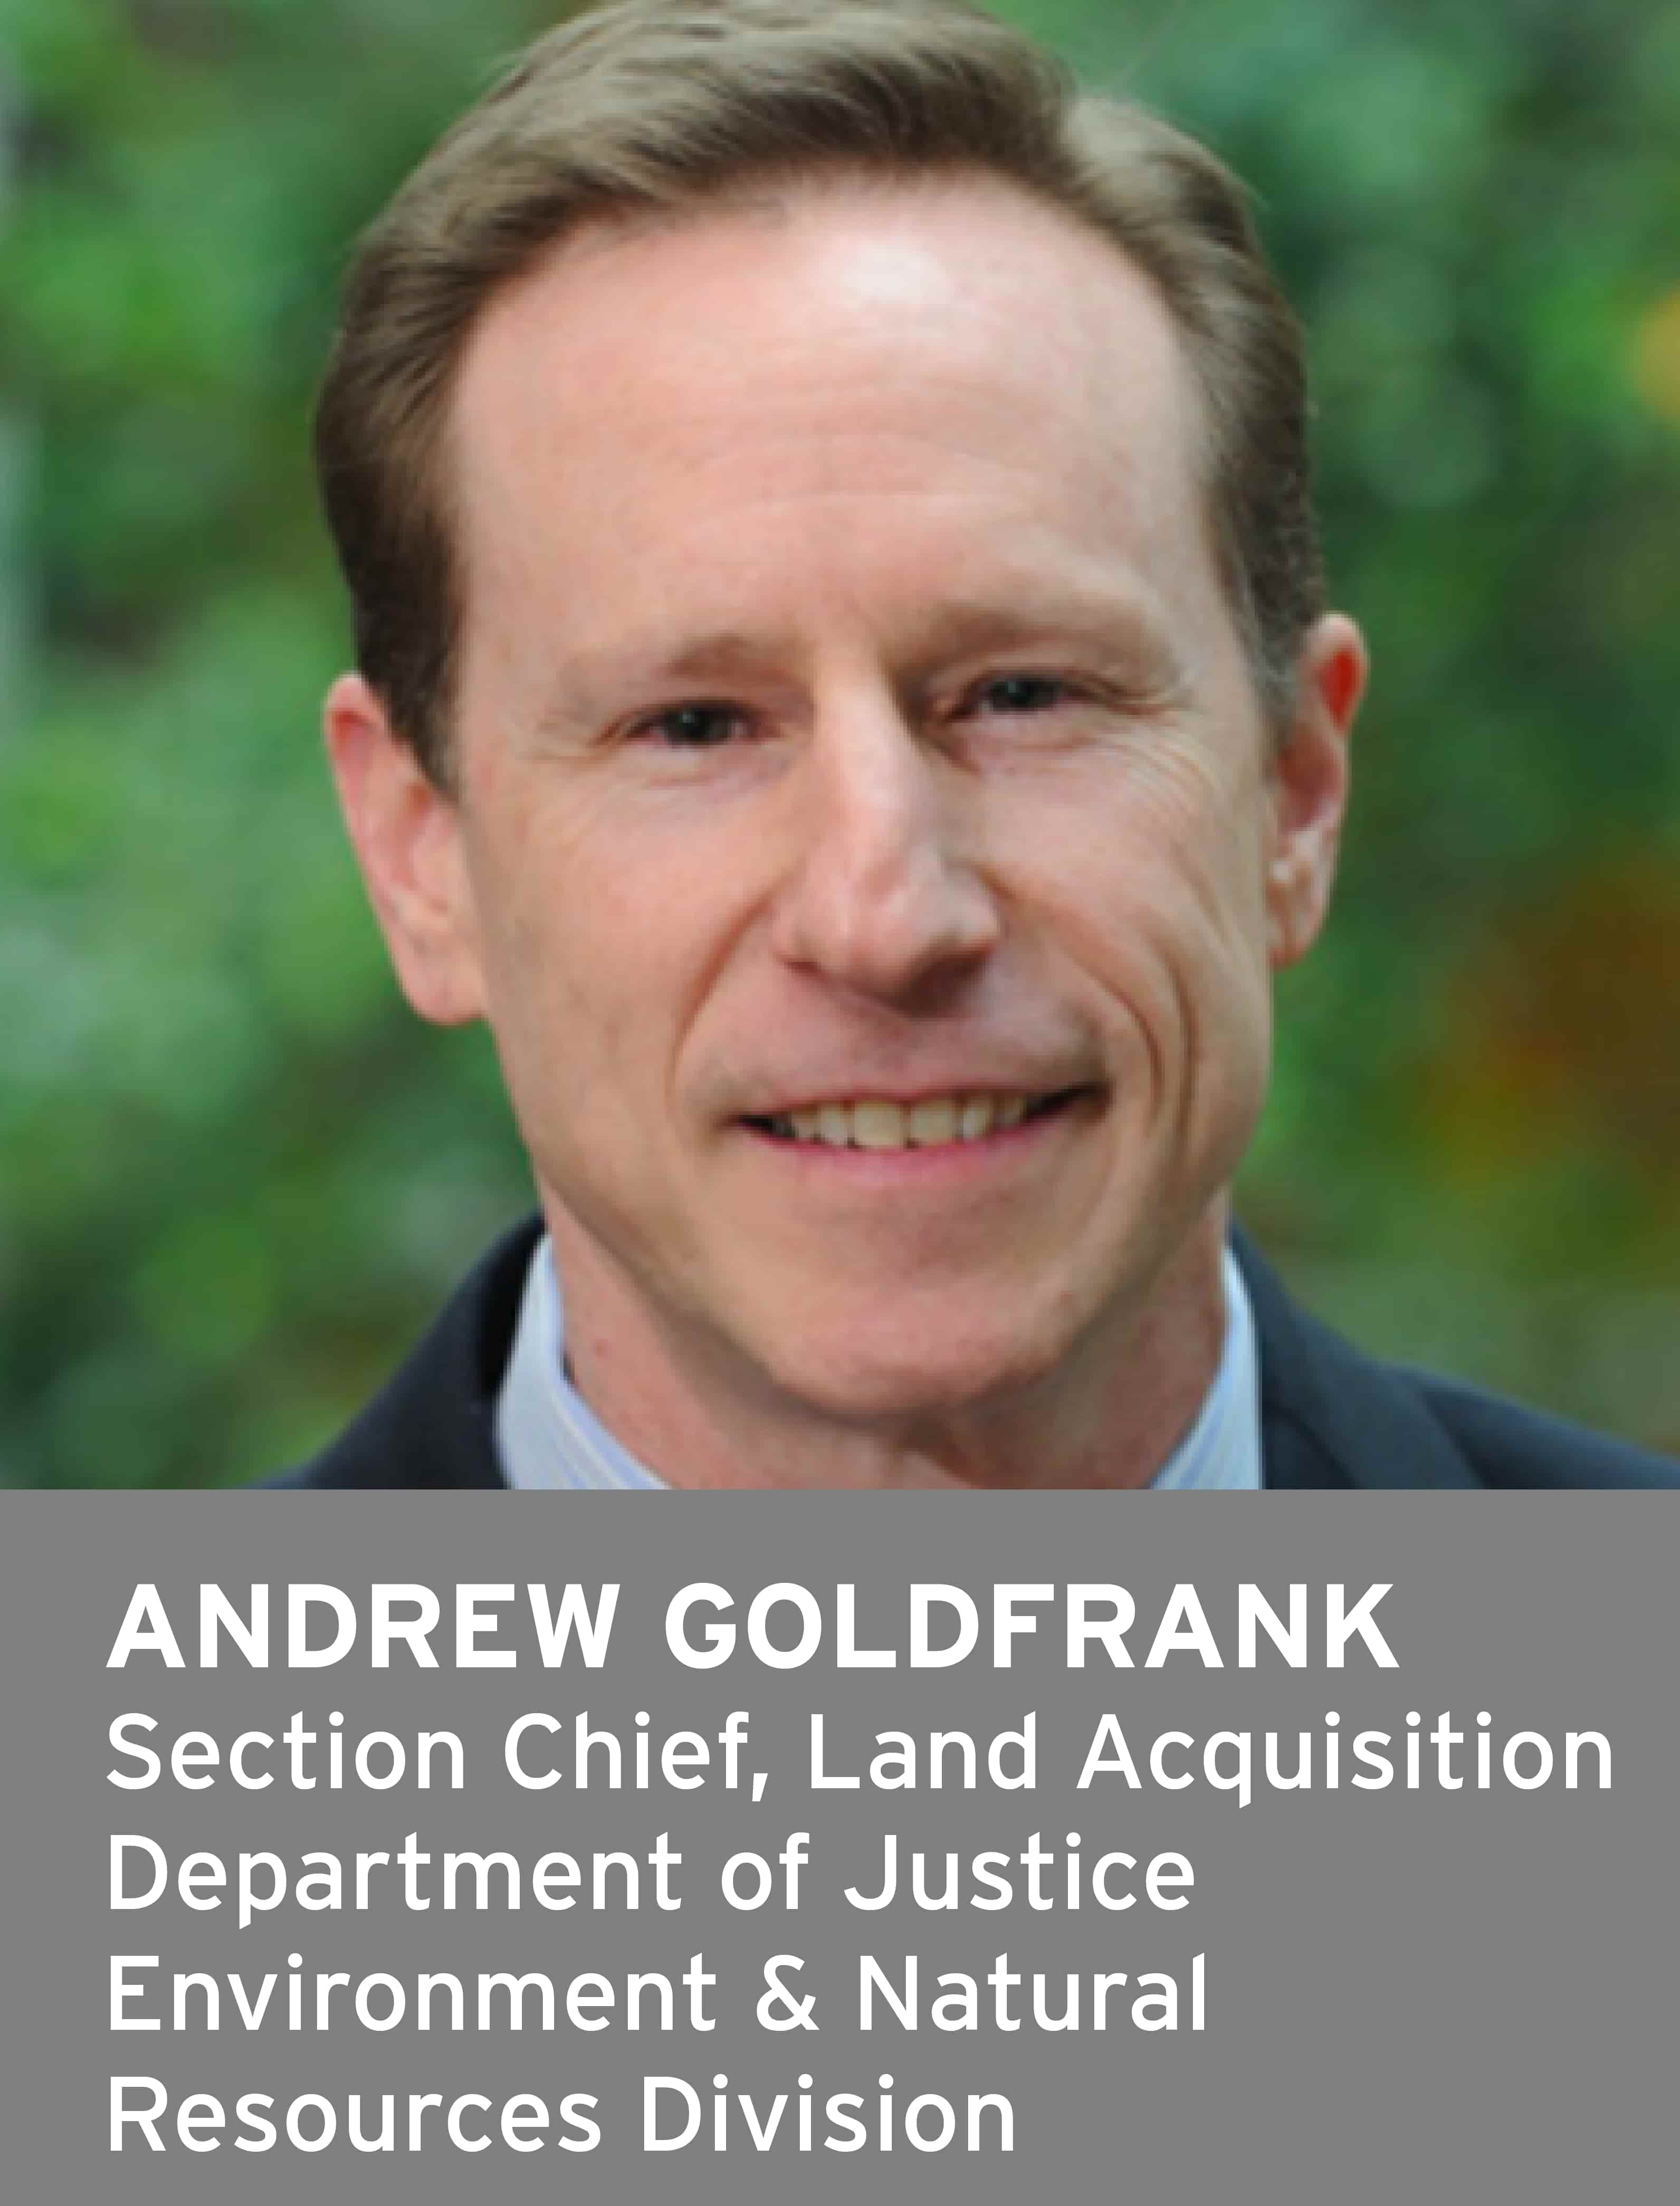 Andrew Goldfrank, Section Chief, and Acquisition, Department of Justice, Environment & Natural Resources Division